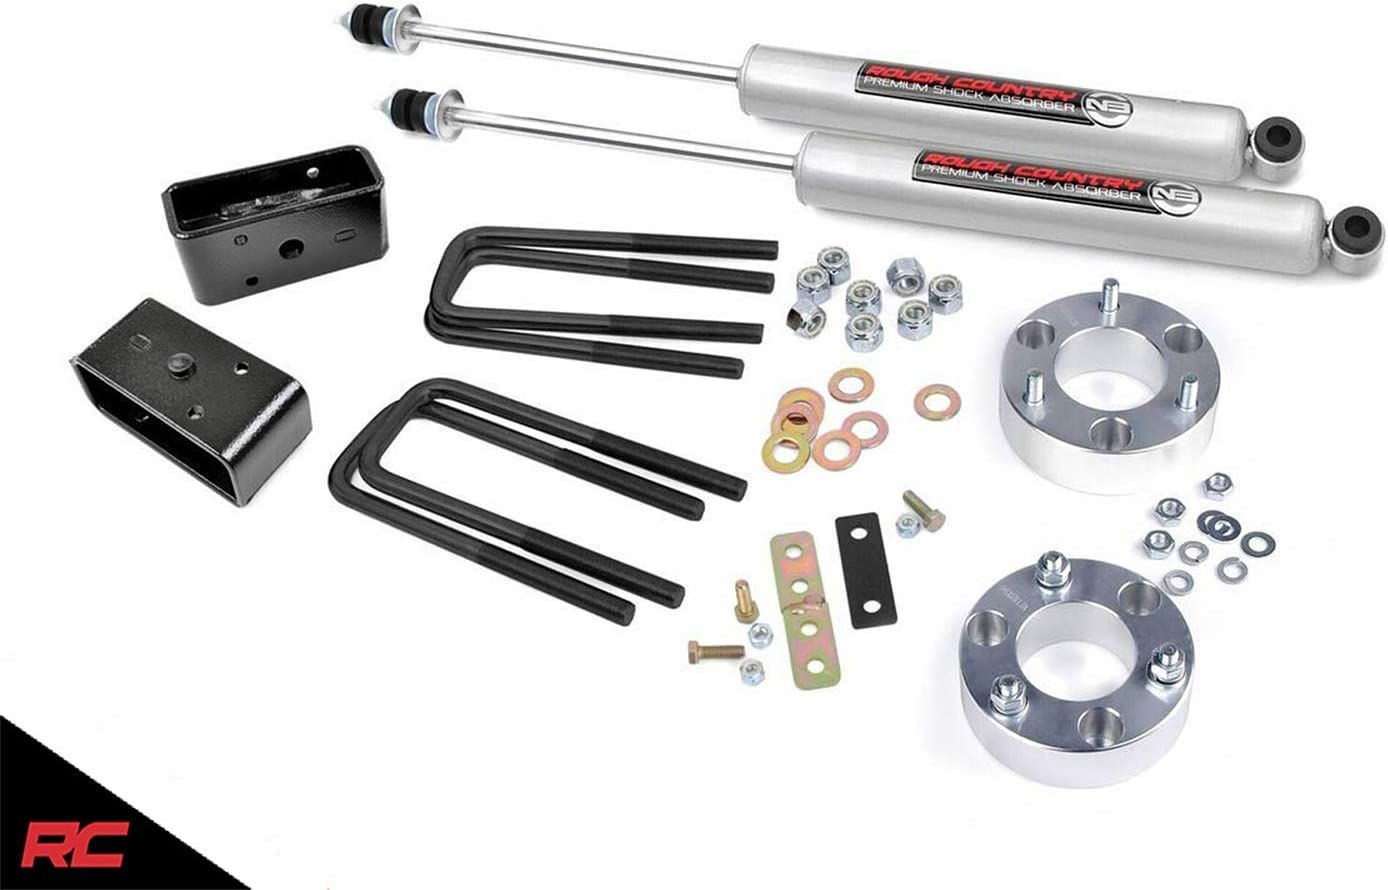 Billet Suspension System fits Rough Country 75030 2.5 Lift Kit N3 Shocks 2000-2006 Tundra